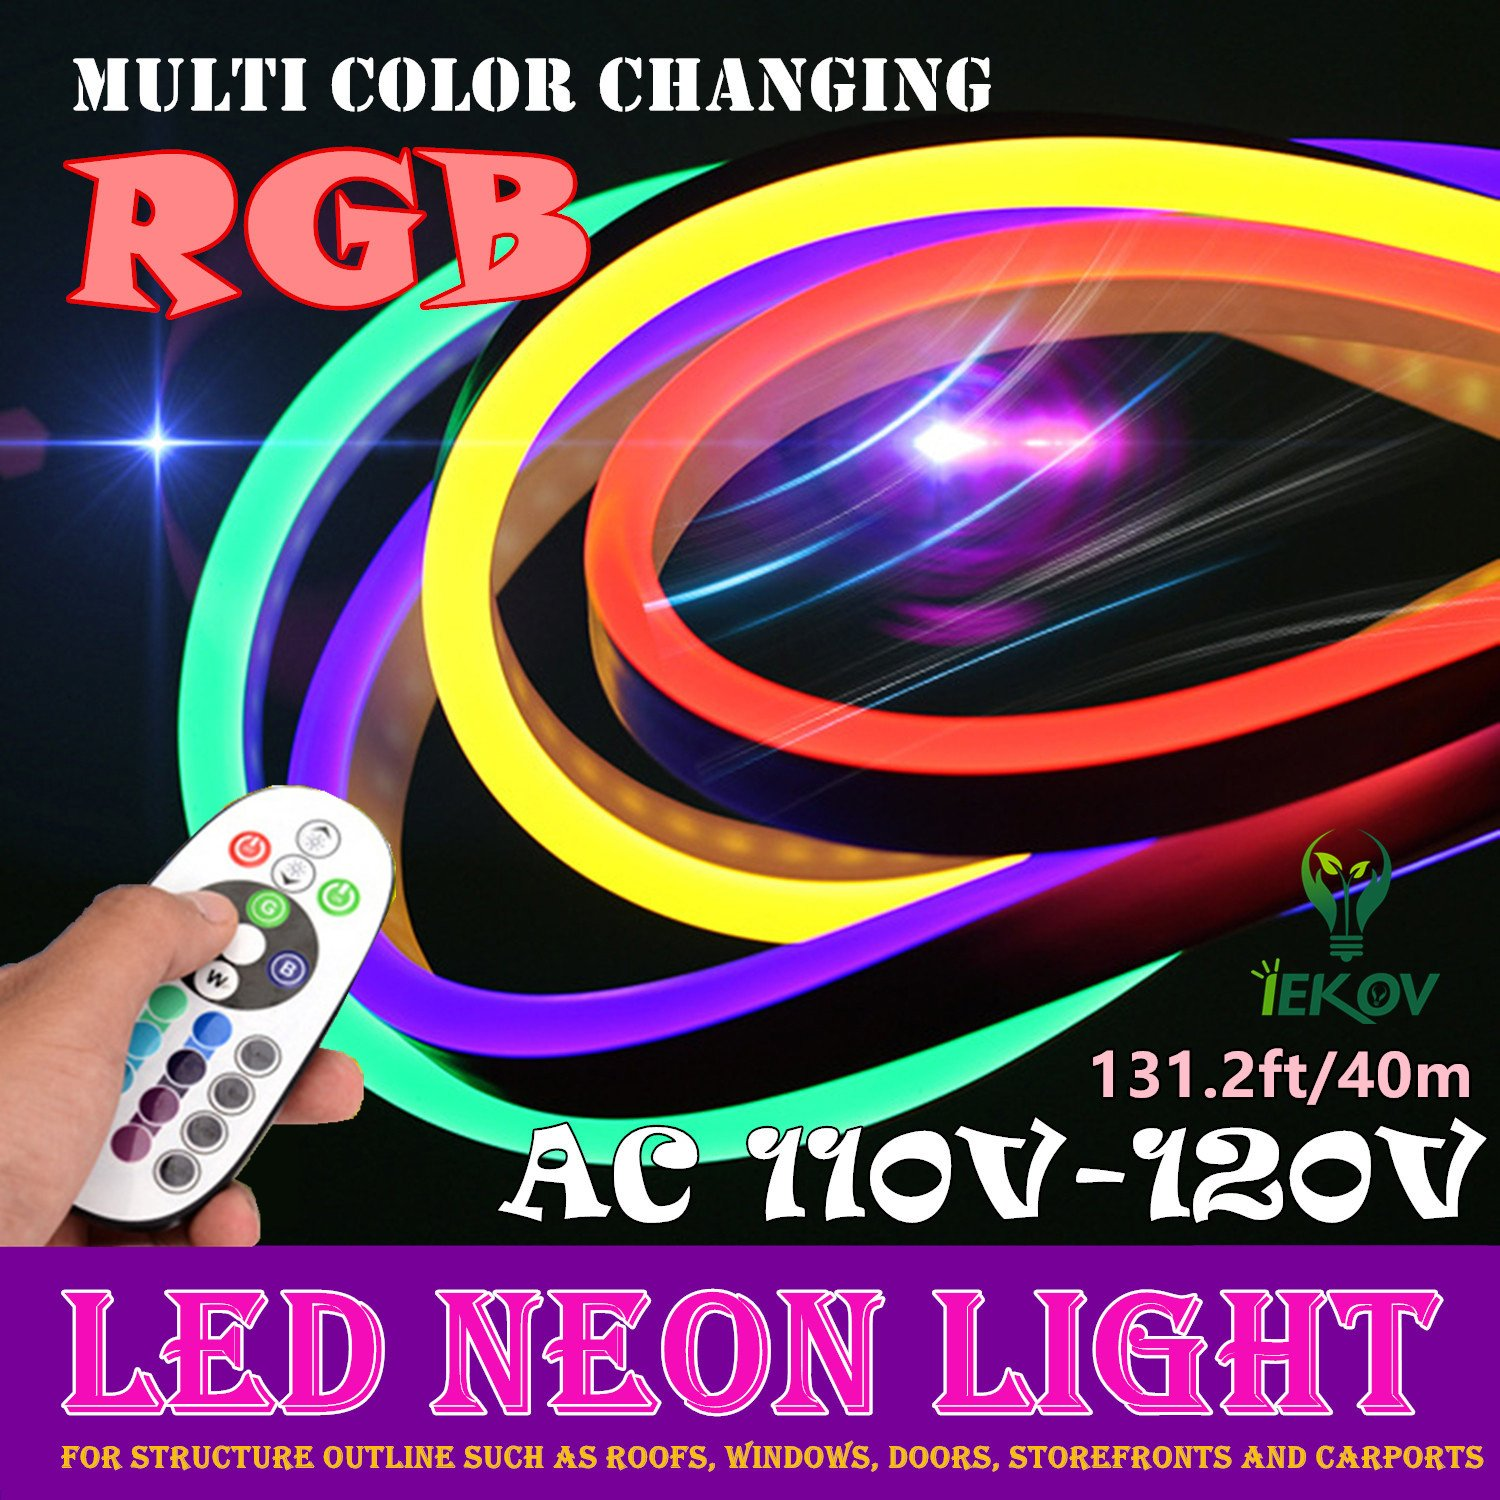 LED NEON LIGHT, IEKOV™ AC 110-120V Flexible RGB LED Neon Light Strip, 60 LEDs/M, Waterproof, Multi Color Changing 5050 SMD LED Rope Light + Remote Controller for Party Decoration (131.2ft/40m) by IEKOV